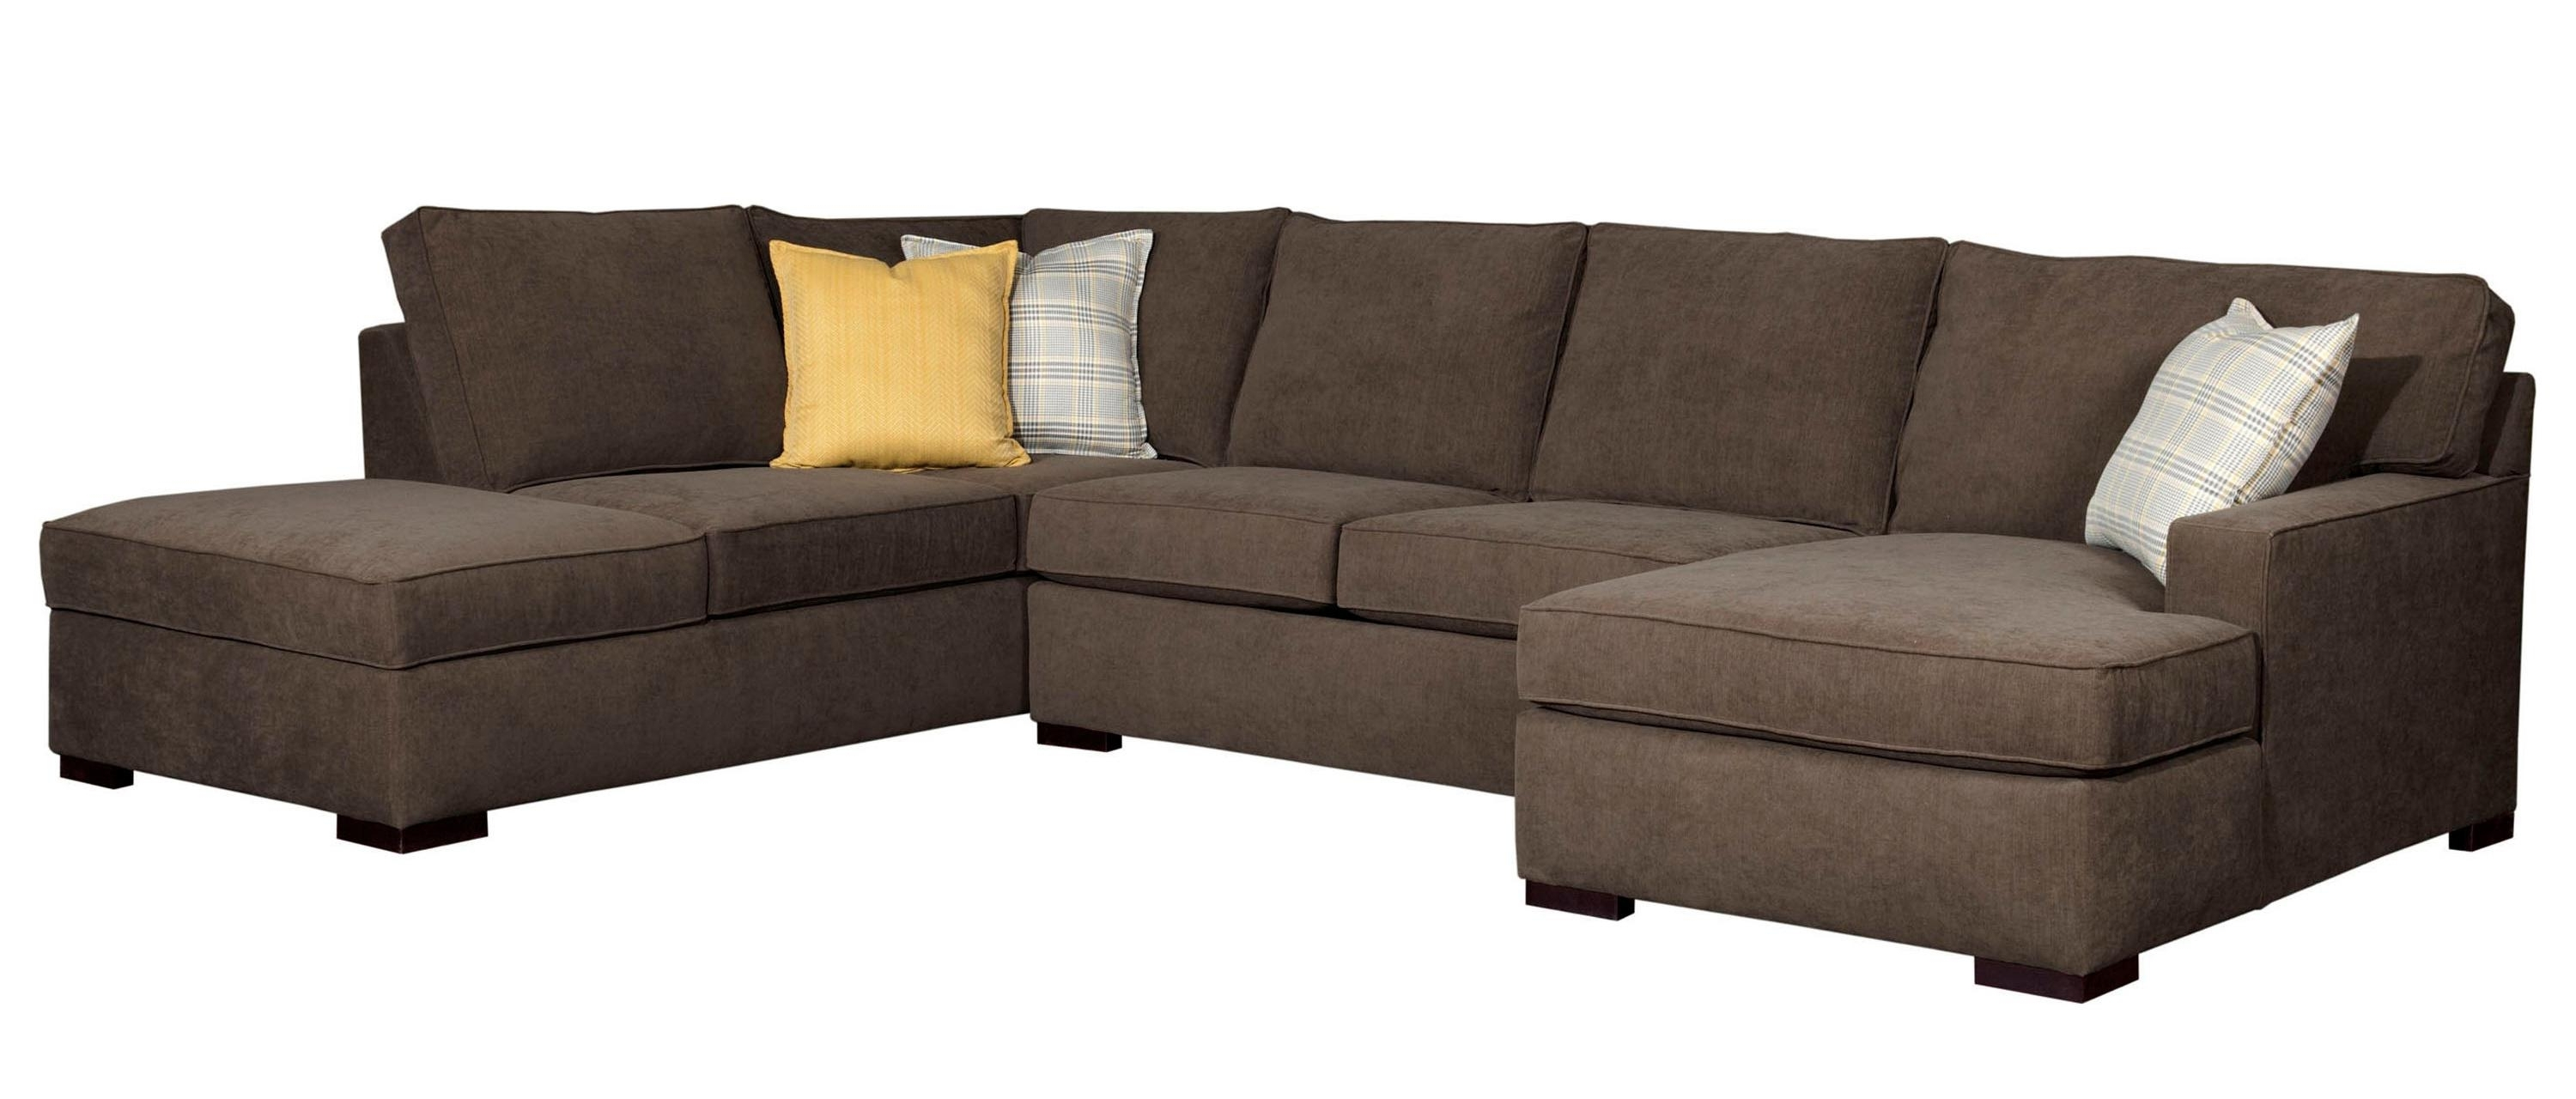 Fashionable Sectional Sofas At Calgary With Regard To Great Broyhill Sectional Sofas 75 With Additional Sectional Sofas (View 19 of 20)